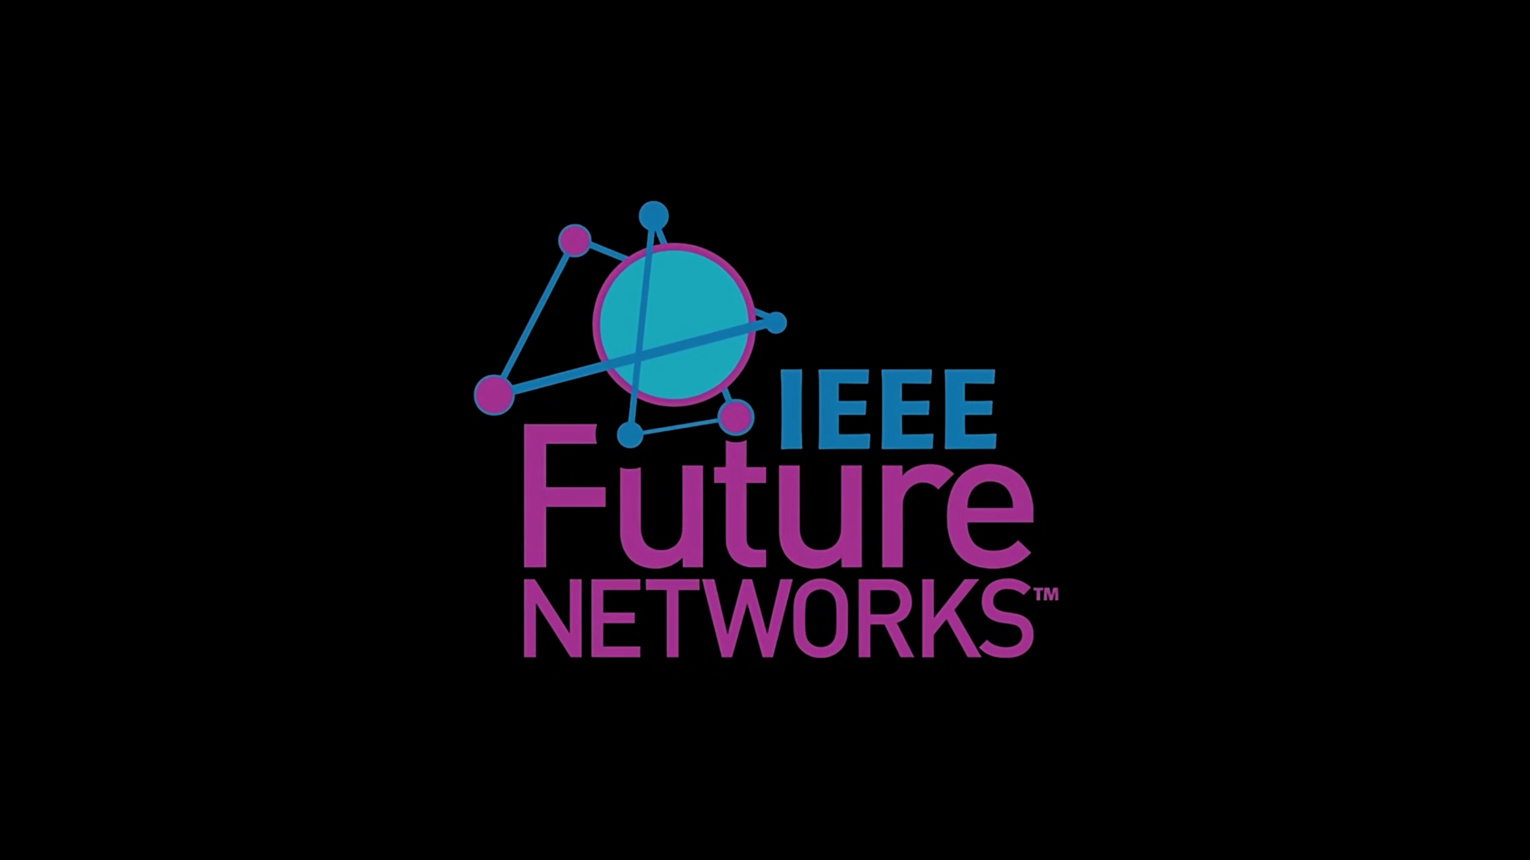 IEEE Future Networks Initiative Overview (late 2019)